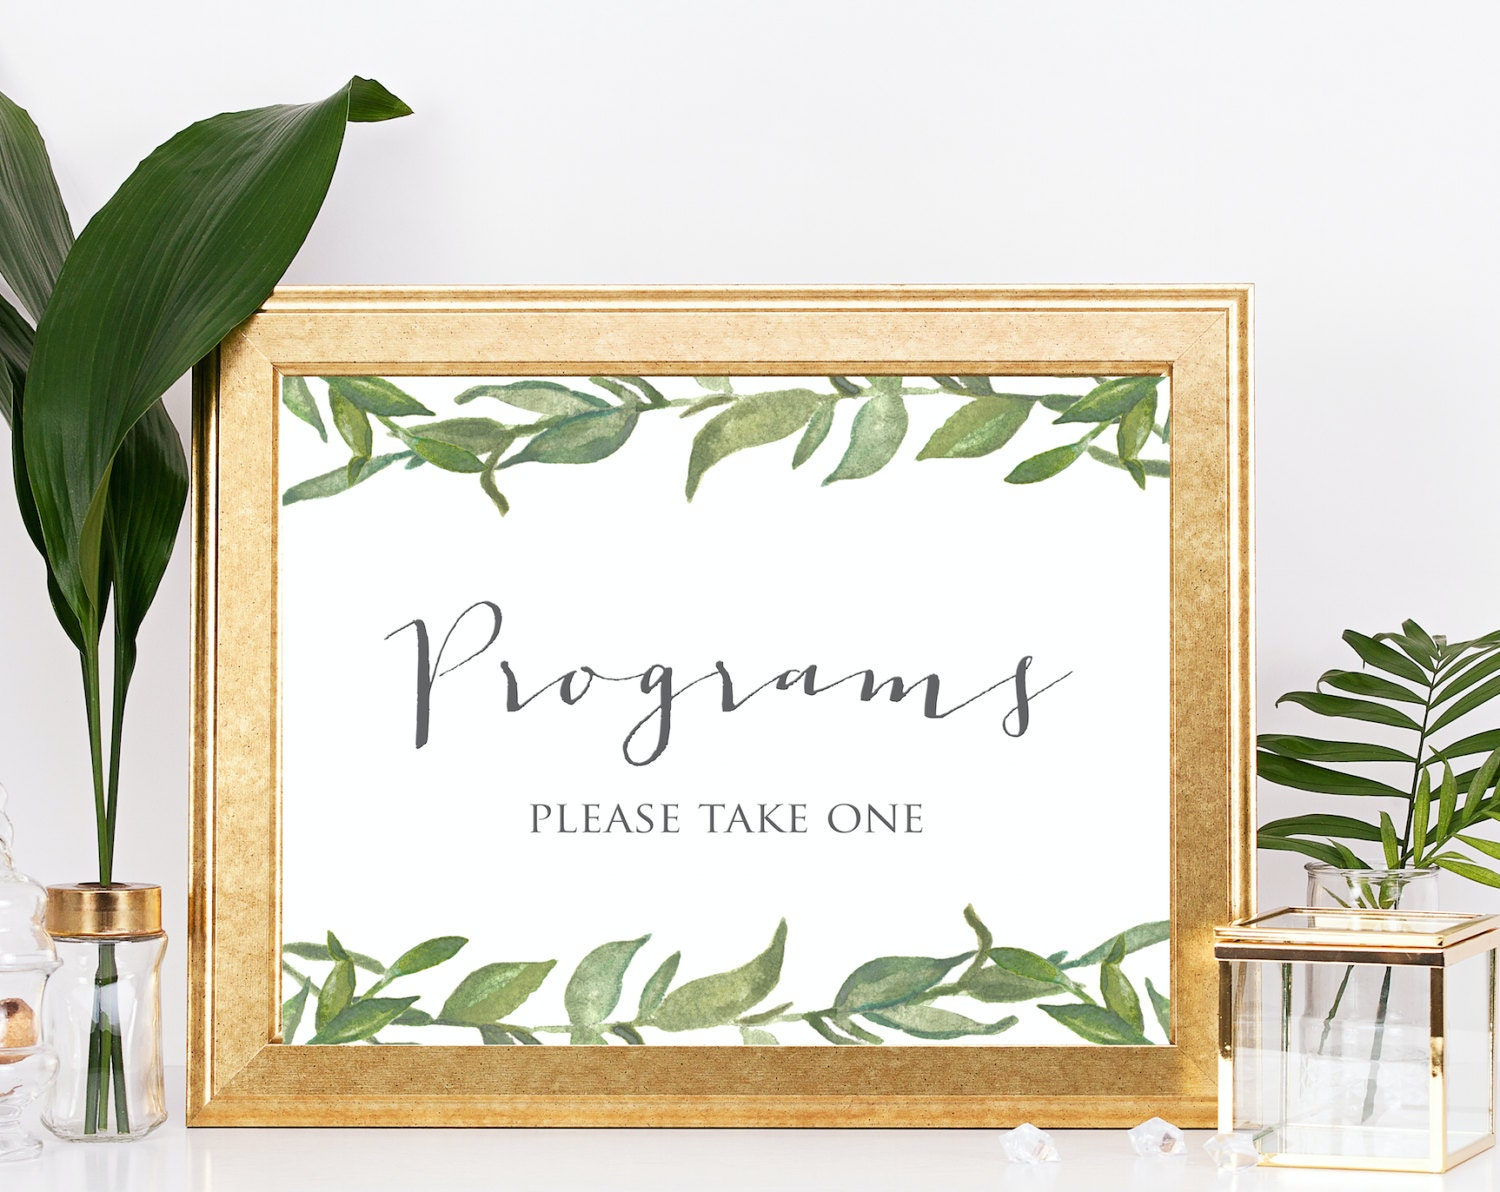 Wedding Programs Sign Printable Green Leafy Leaves Greenery Signage INSTANT DOWNLOAD 8x10 Digital Ceremony Signs